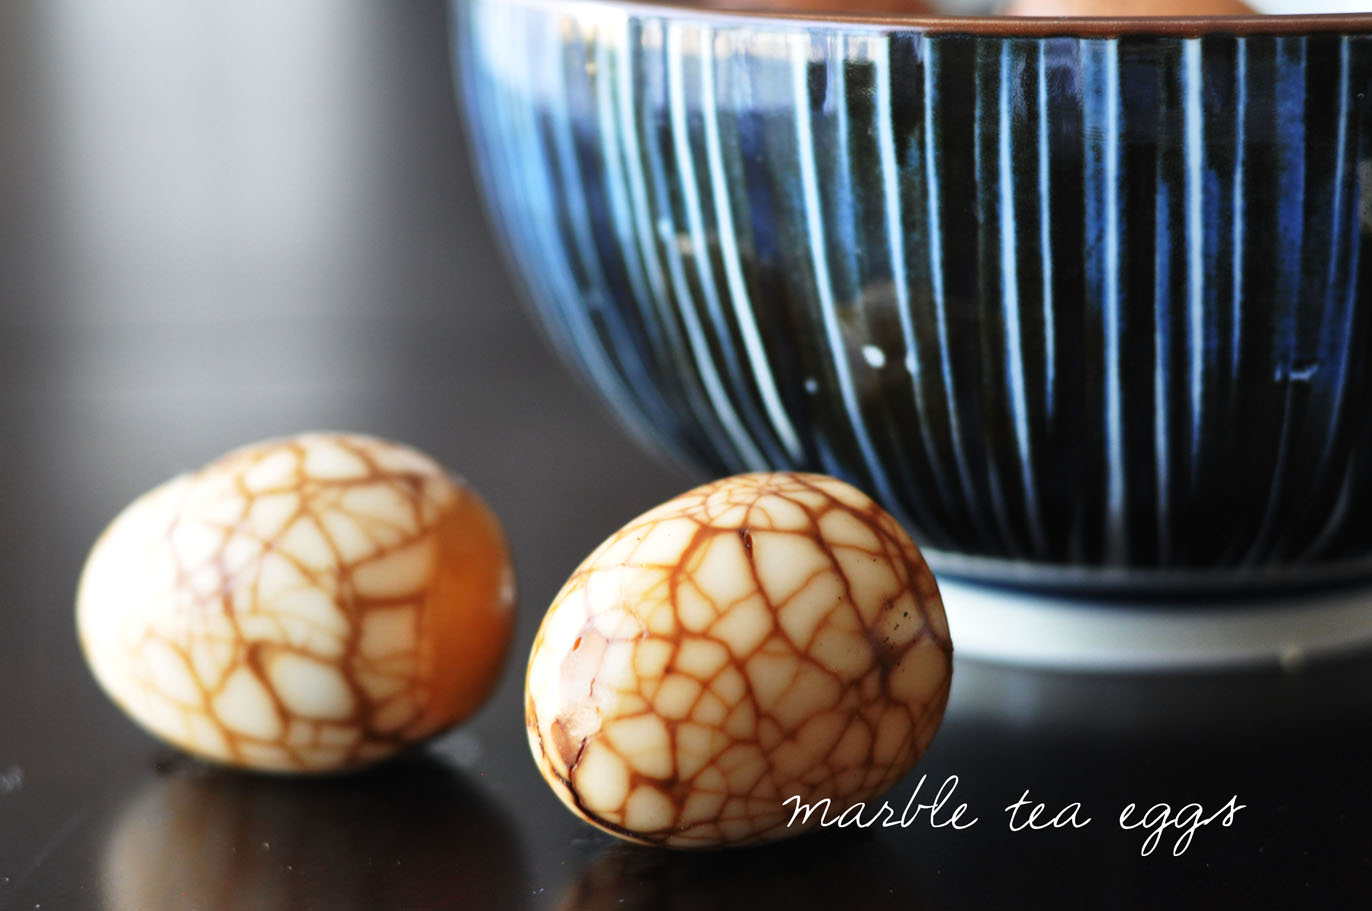 camo meets couture: Chinese Marble Tea Eggs